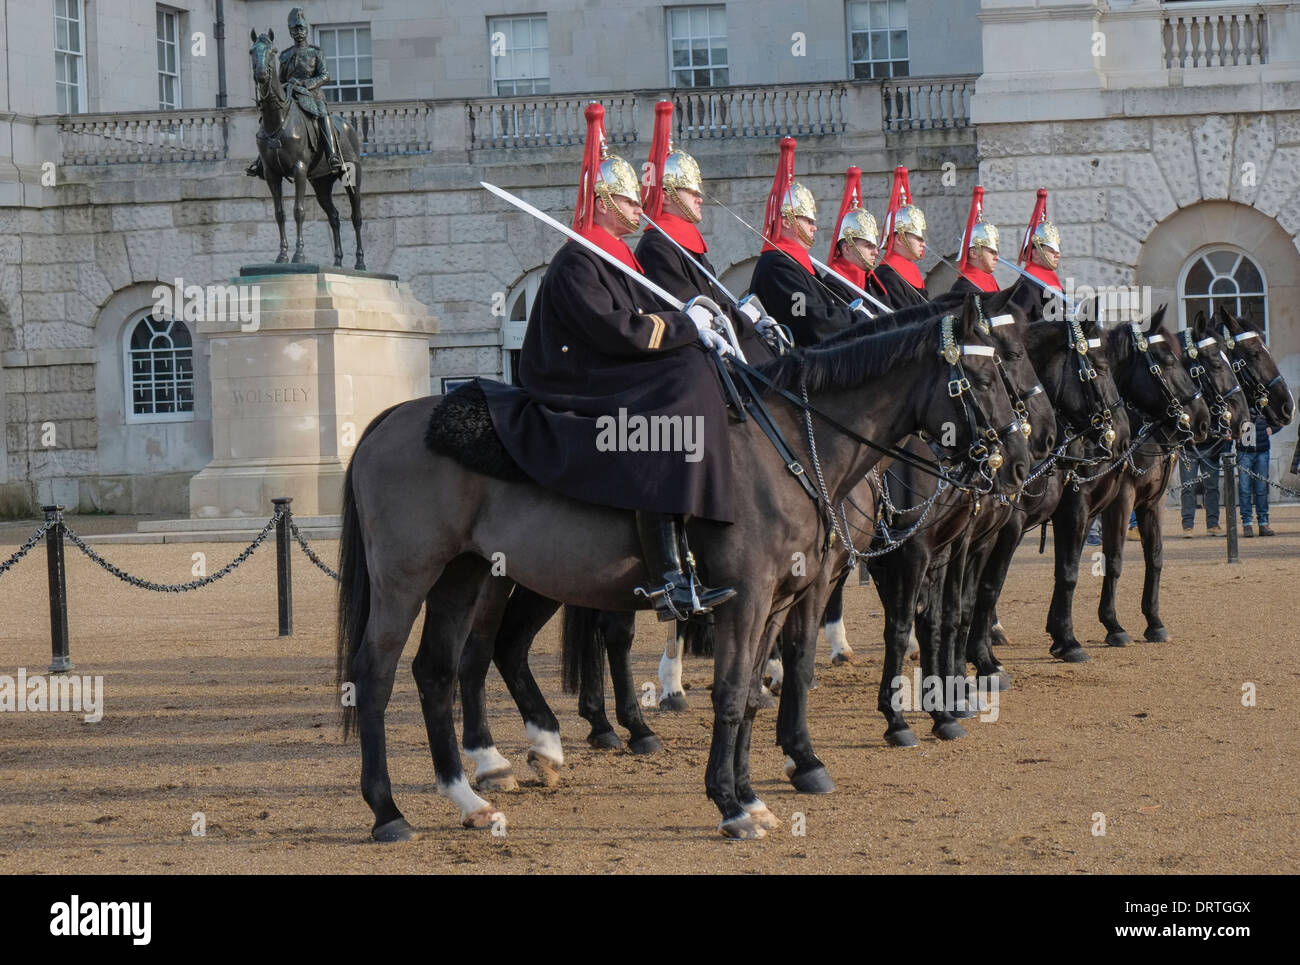 Changing Of The Guard Horse Stock Photos & Changing Of The